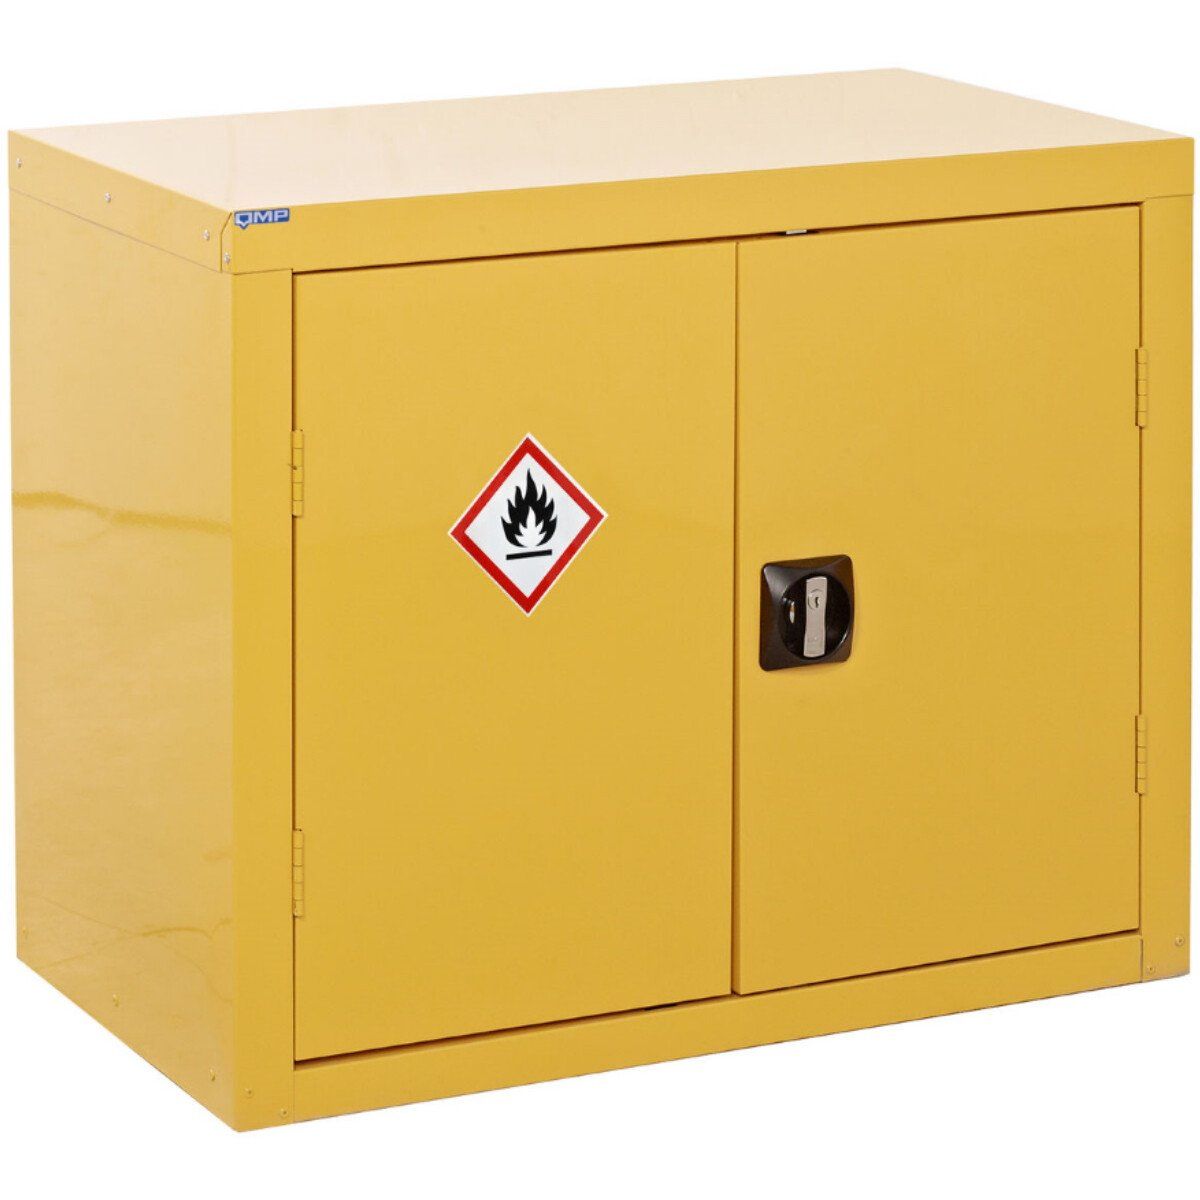 QMP CZ703530 Hazardous Substance Cupboard 700 x 350 x 300mm